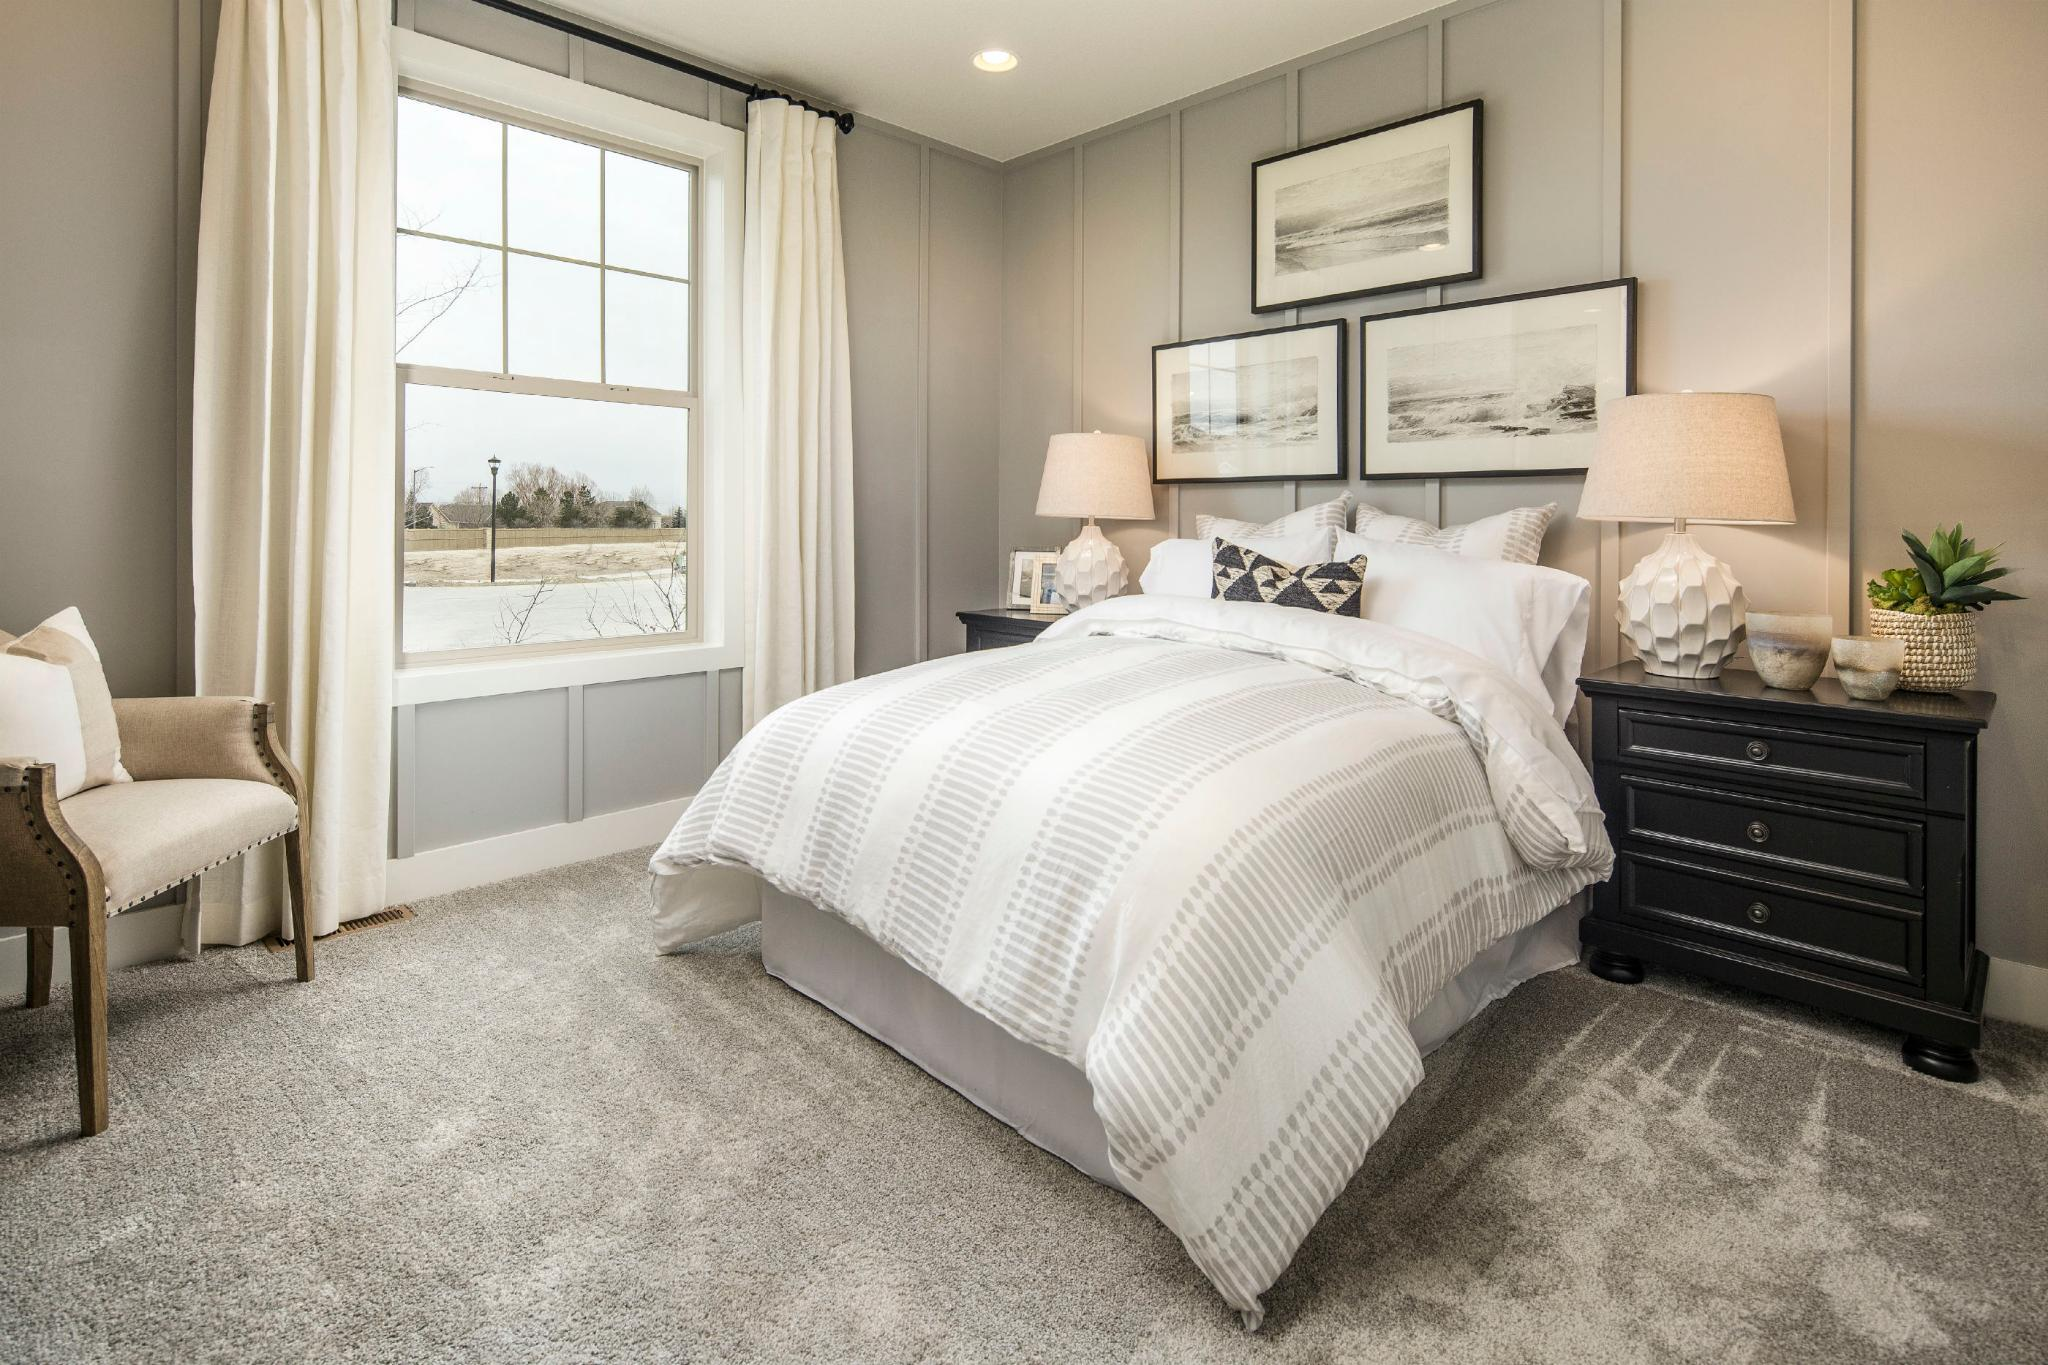 Bedroom featured in the Plan C408 By American Legend Homes in Fort Collins-Loveland, CO